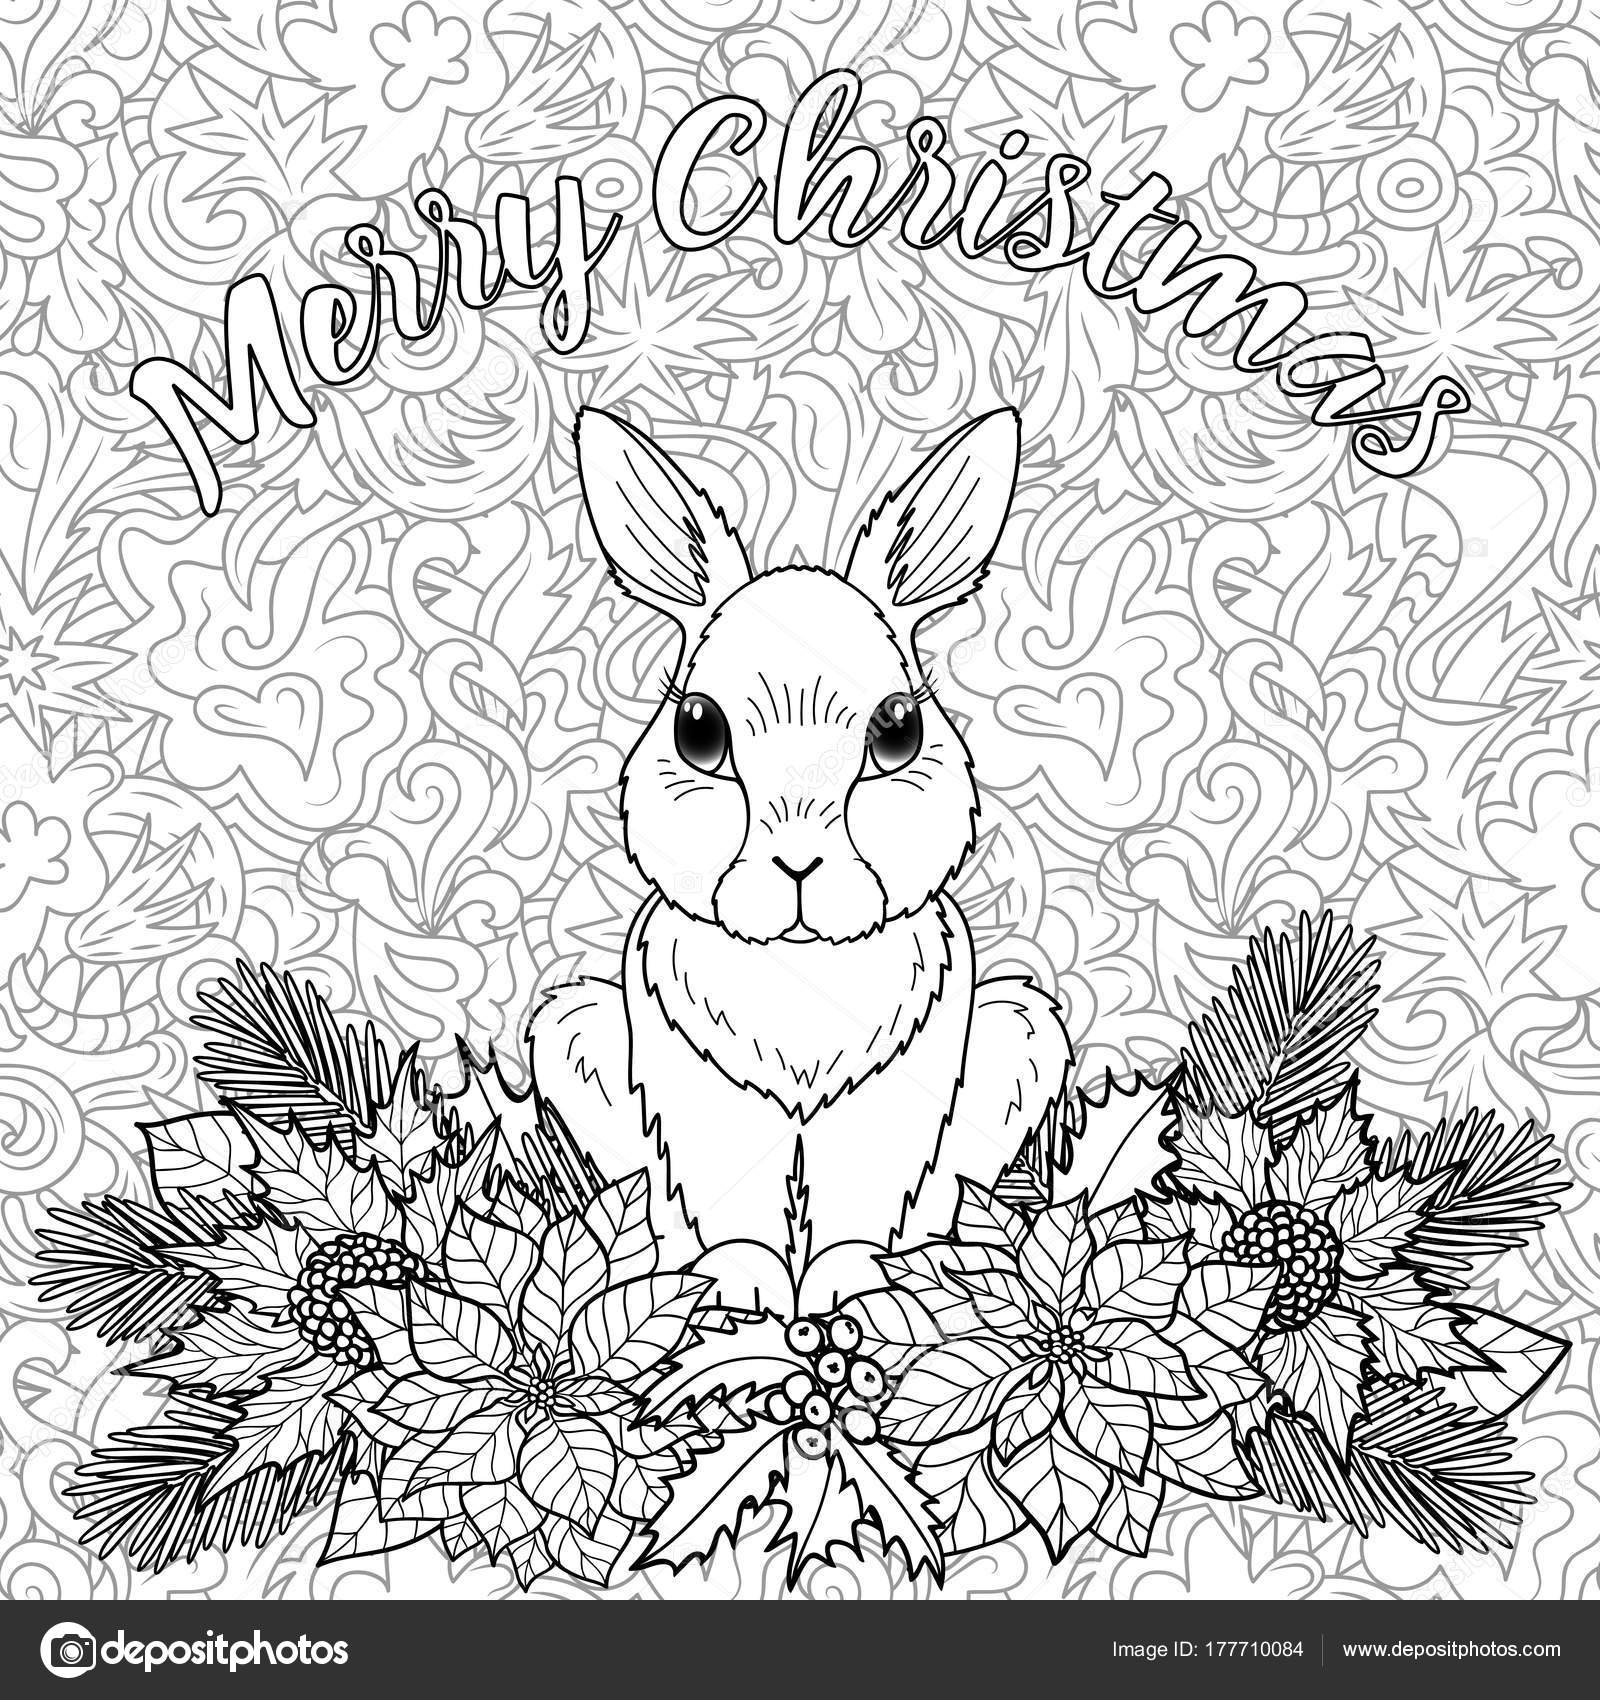 Merry christmas coloring page with rabbit stock vector